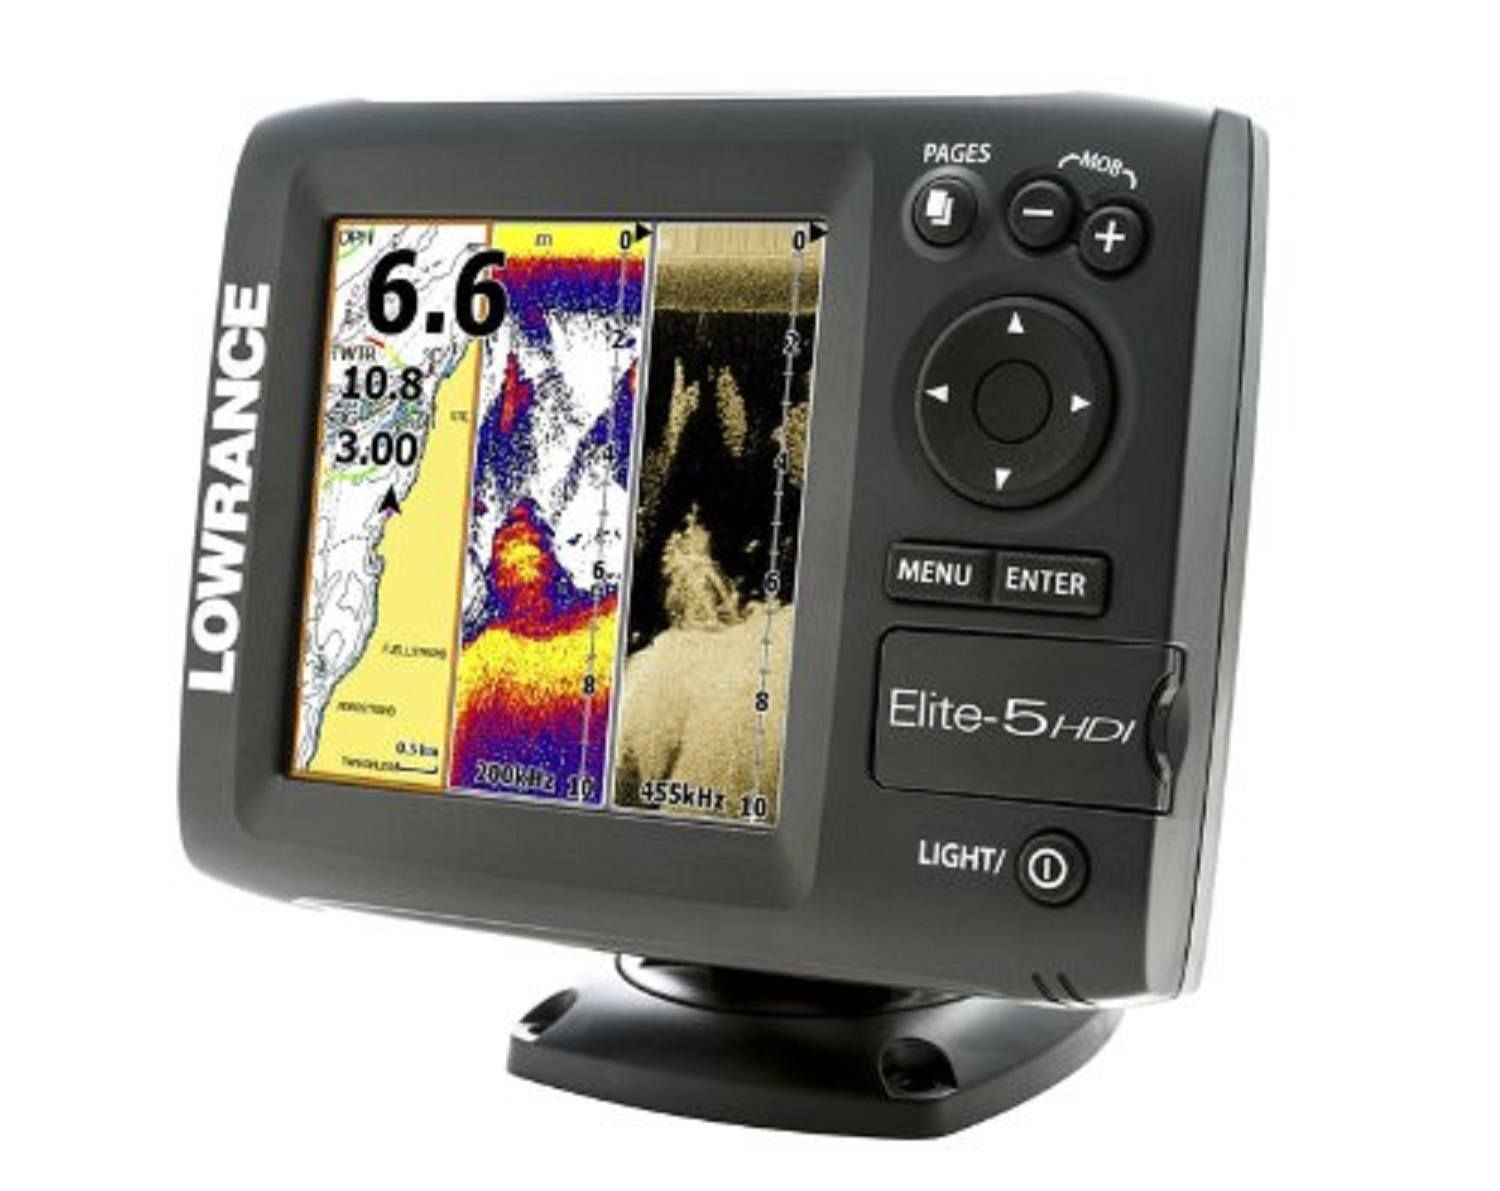 The Elite-5 HDI combo from Lowrance is a chart plotter that